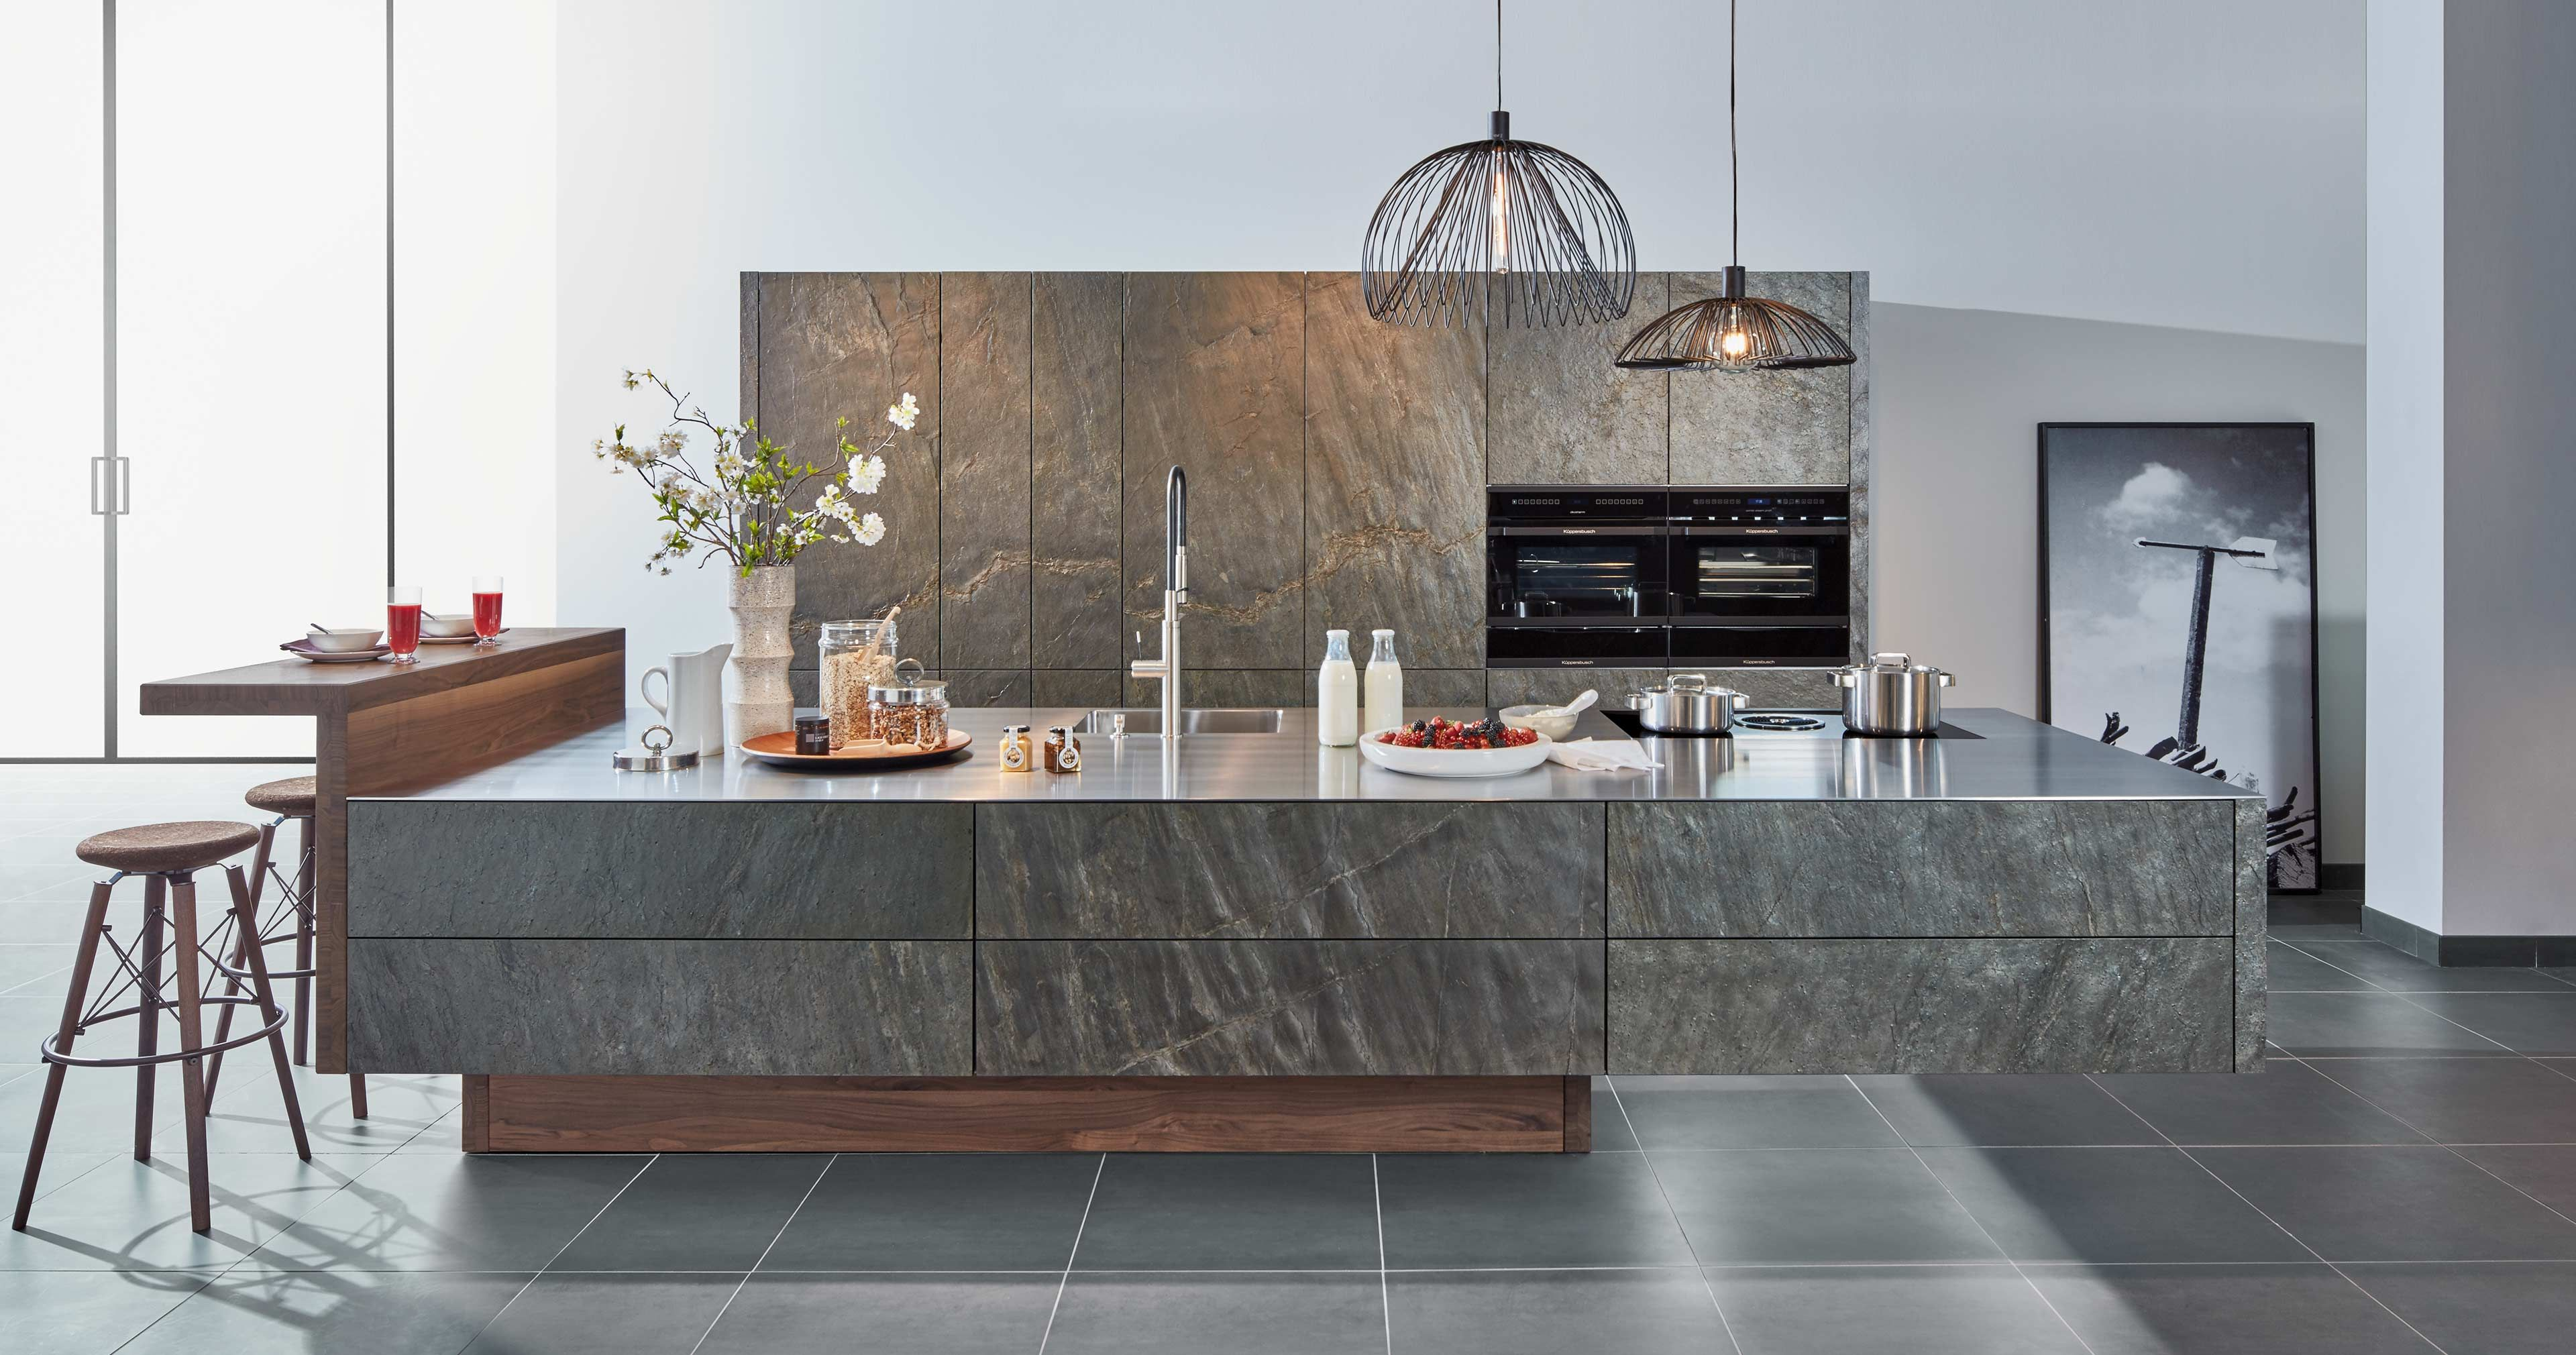 Schon A Real Stone Kitchen With Zeyko Flybridge Appears To Be Design Outweighing  Physics. The Weight Of The Suspended Kitchen Block In Real Ocean Green  Stone ...